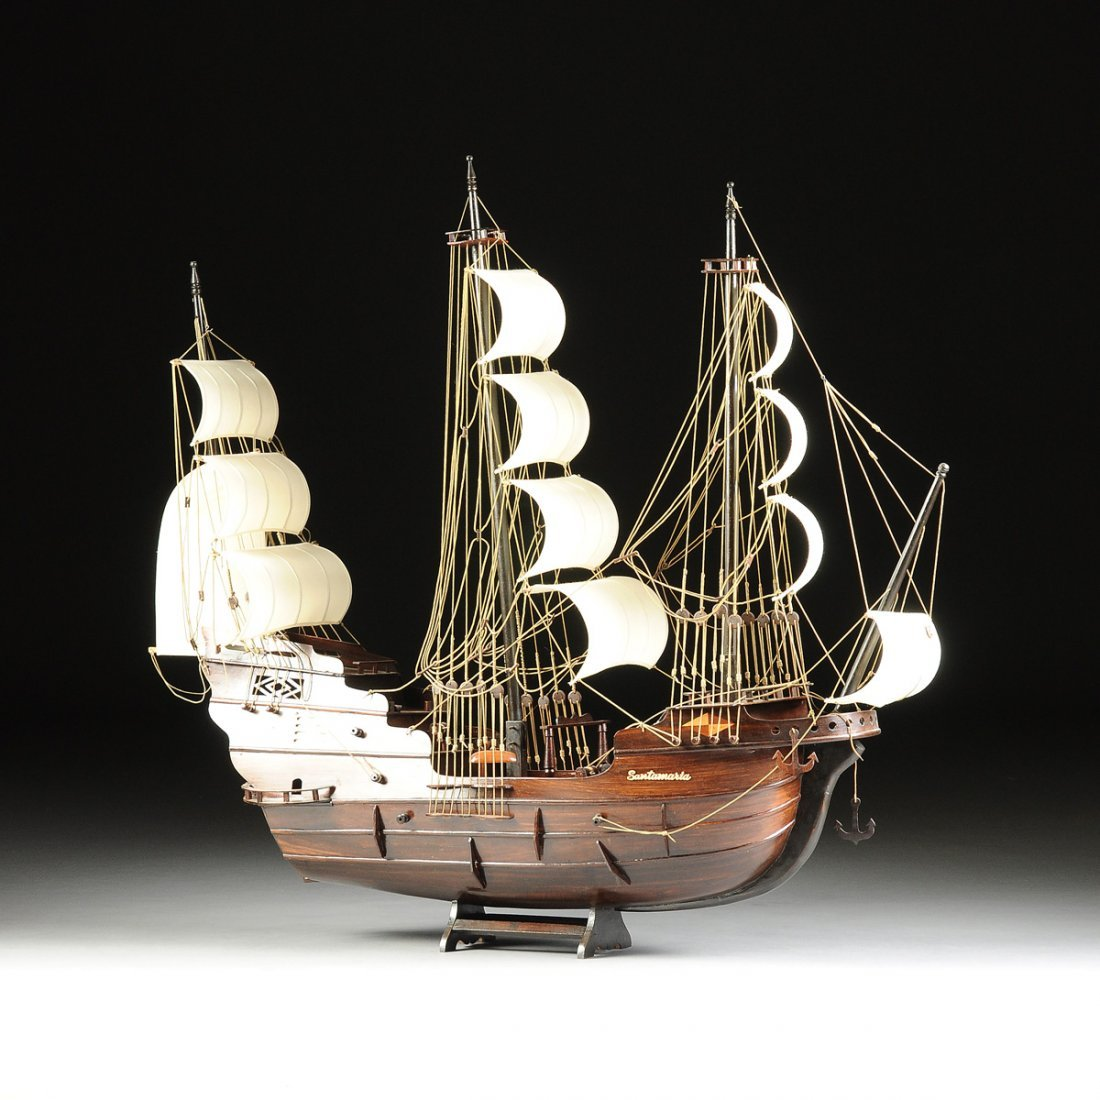 A SPANISH STYLE THREE MASTED CARVED AND STAINED WOOD